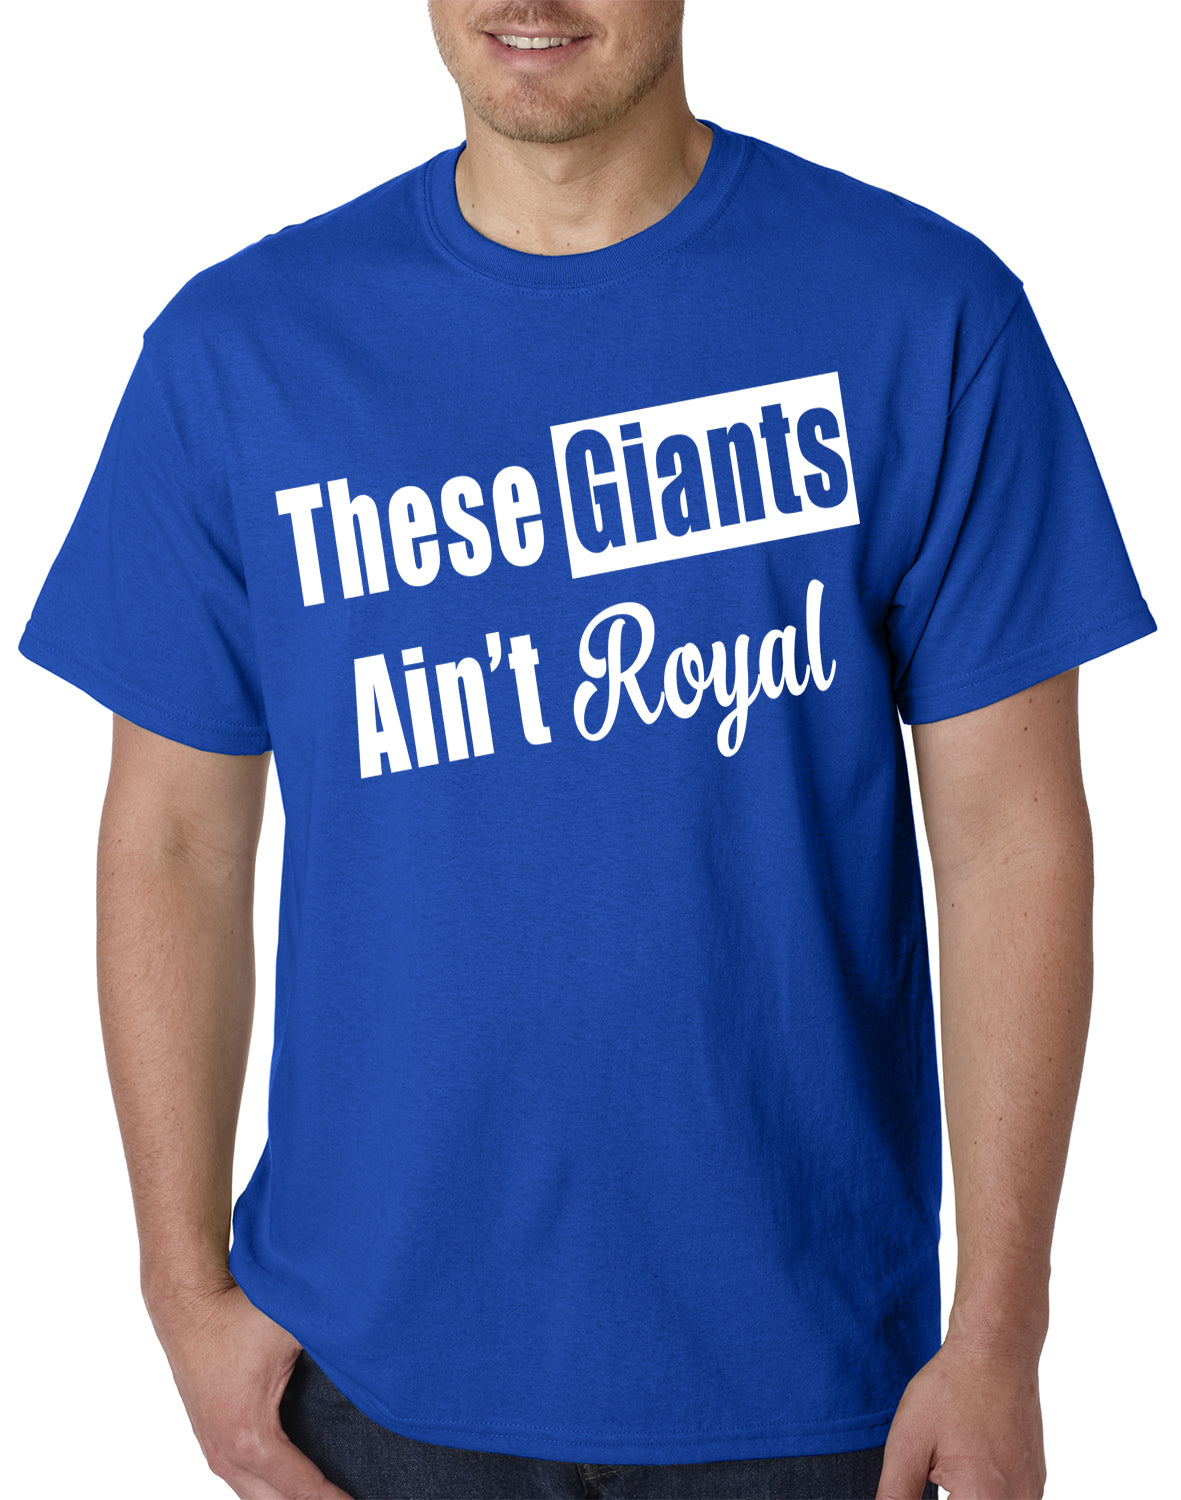 These Giants Ain't Royal Mens T-shirt